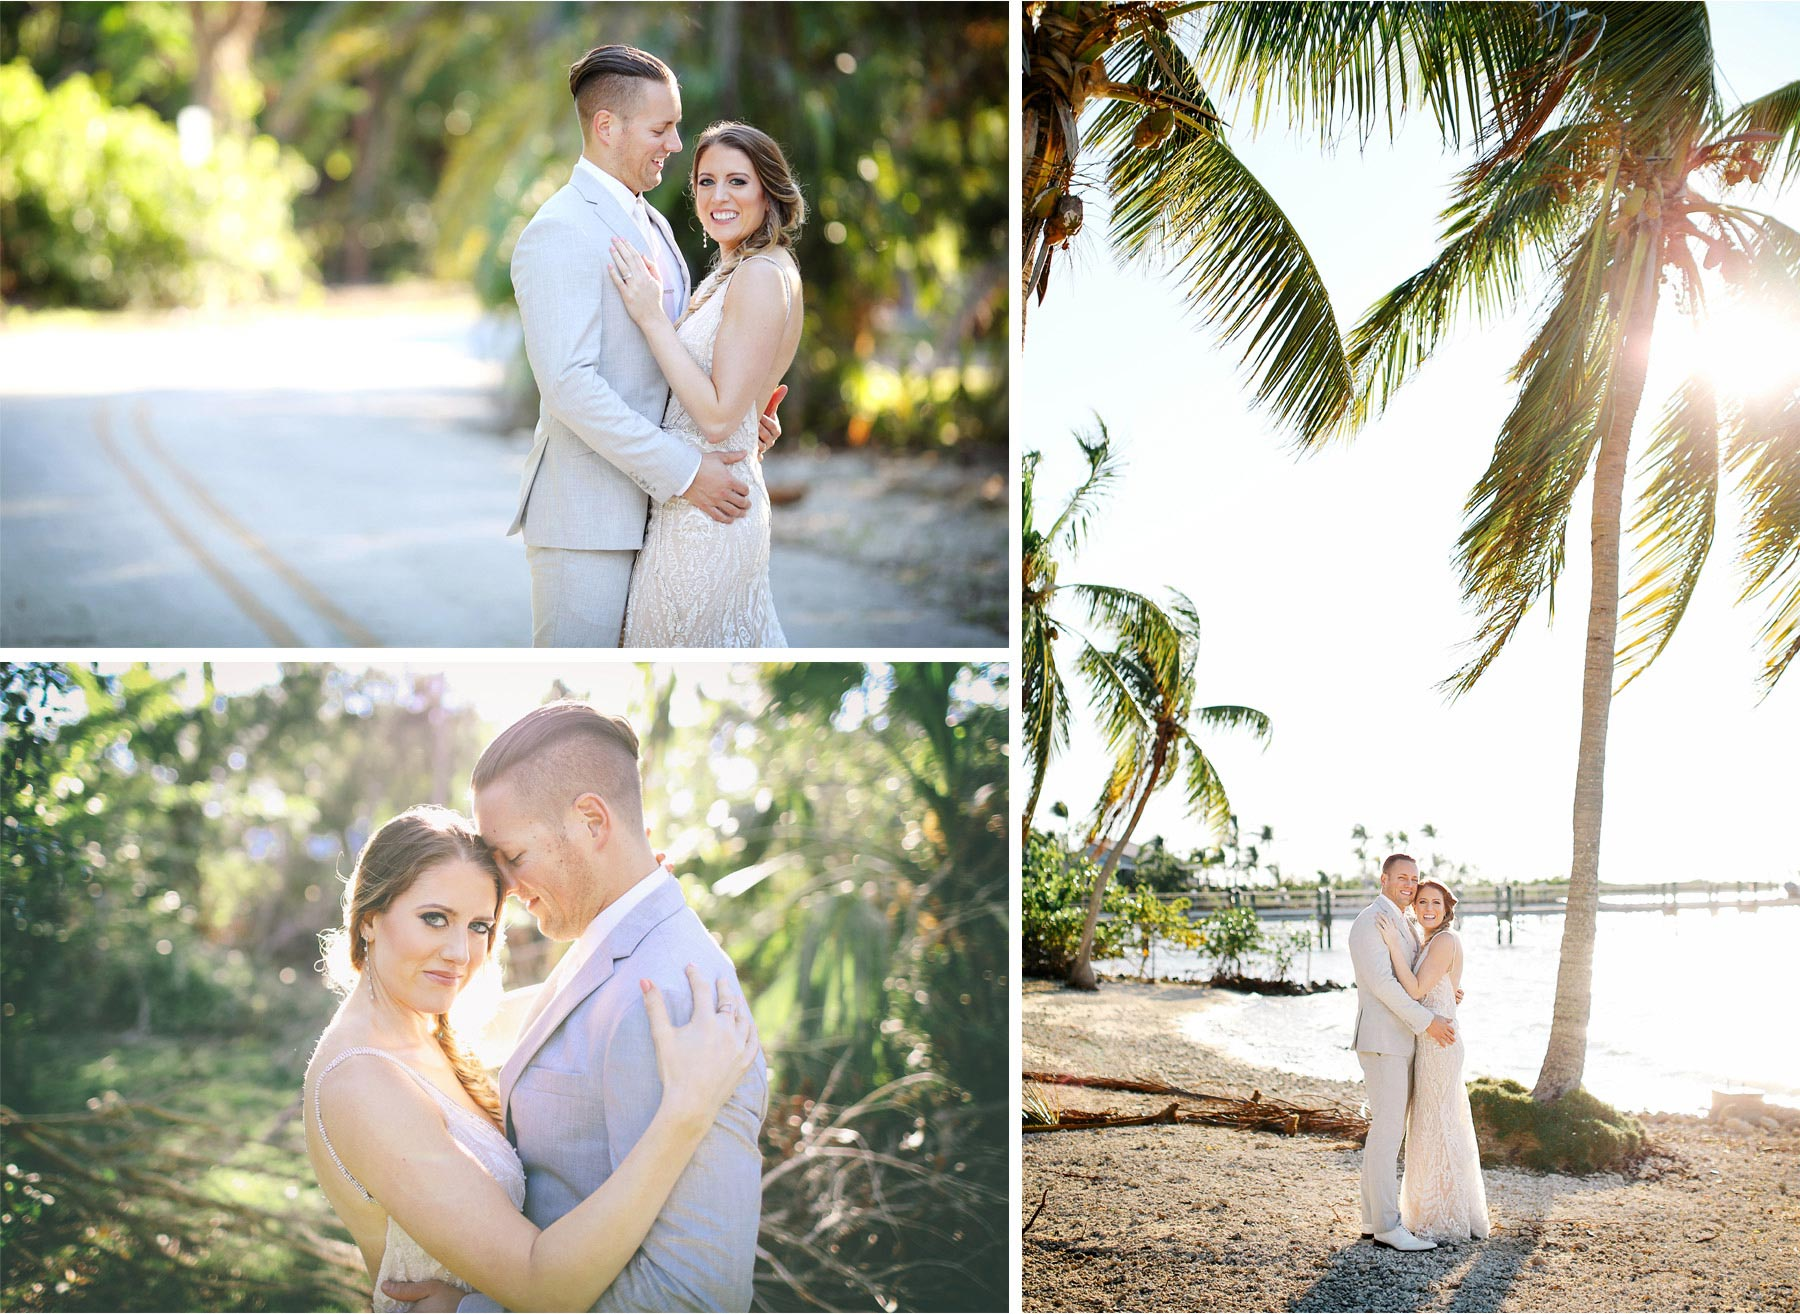 21-Key-Largo-Florida-Keys-Wedding-Photographer-by-Andrew-Vick-Photography-Playa-Largo-Resort-and-Spa-Hotel-Destination-Winter-Wear-It-Again-Bride-Groom-Embrace-Beach-Palm-Trees-Vintage-Carrie-and-Brian.jpg